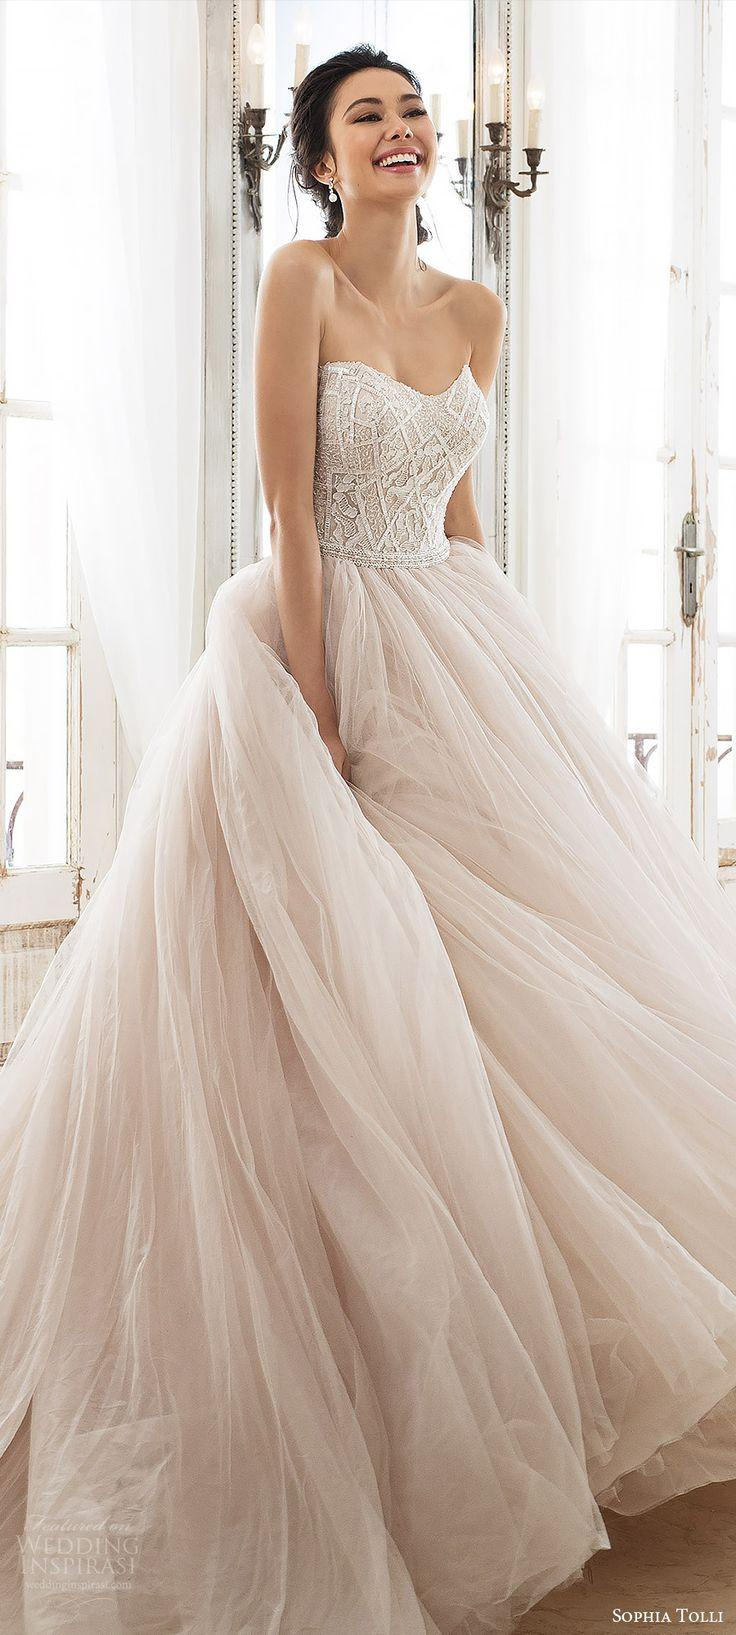 Hochzeit - 2018 Wedding Dress Trends To Love Part 1 — Silhouettes And Sleeves